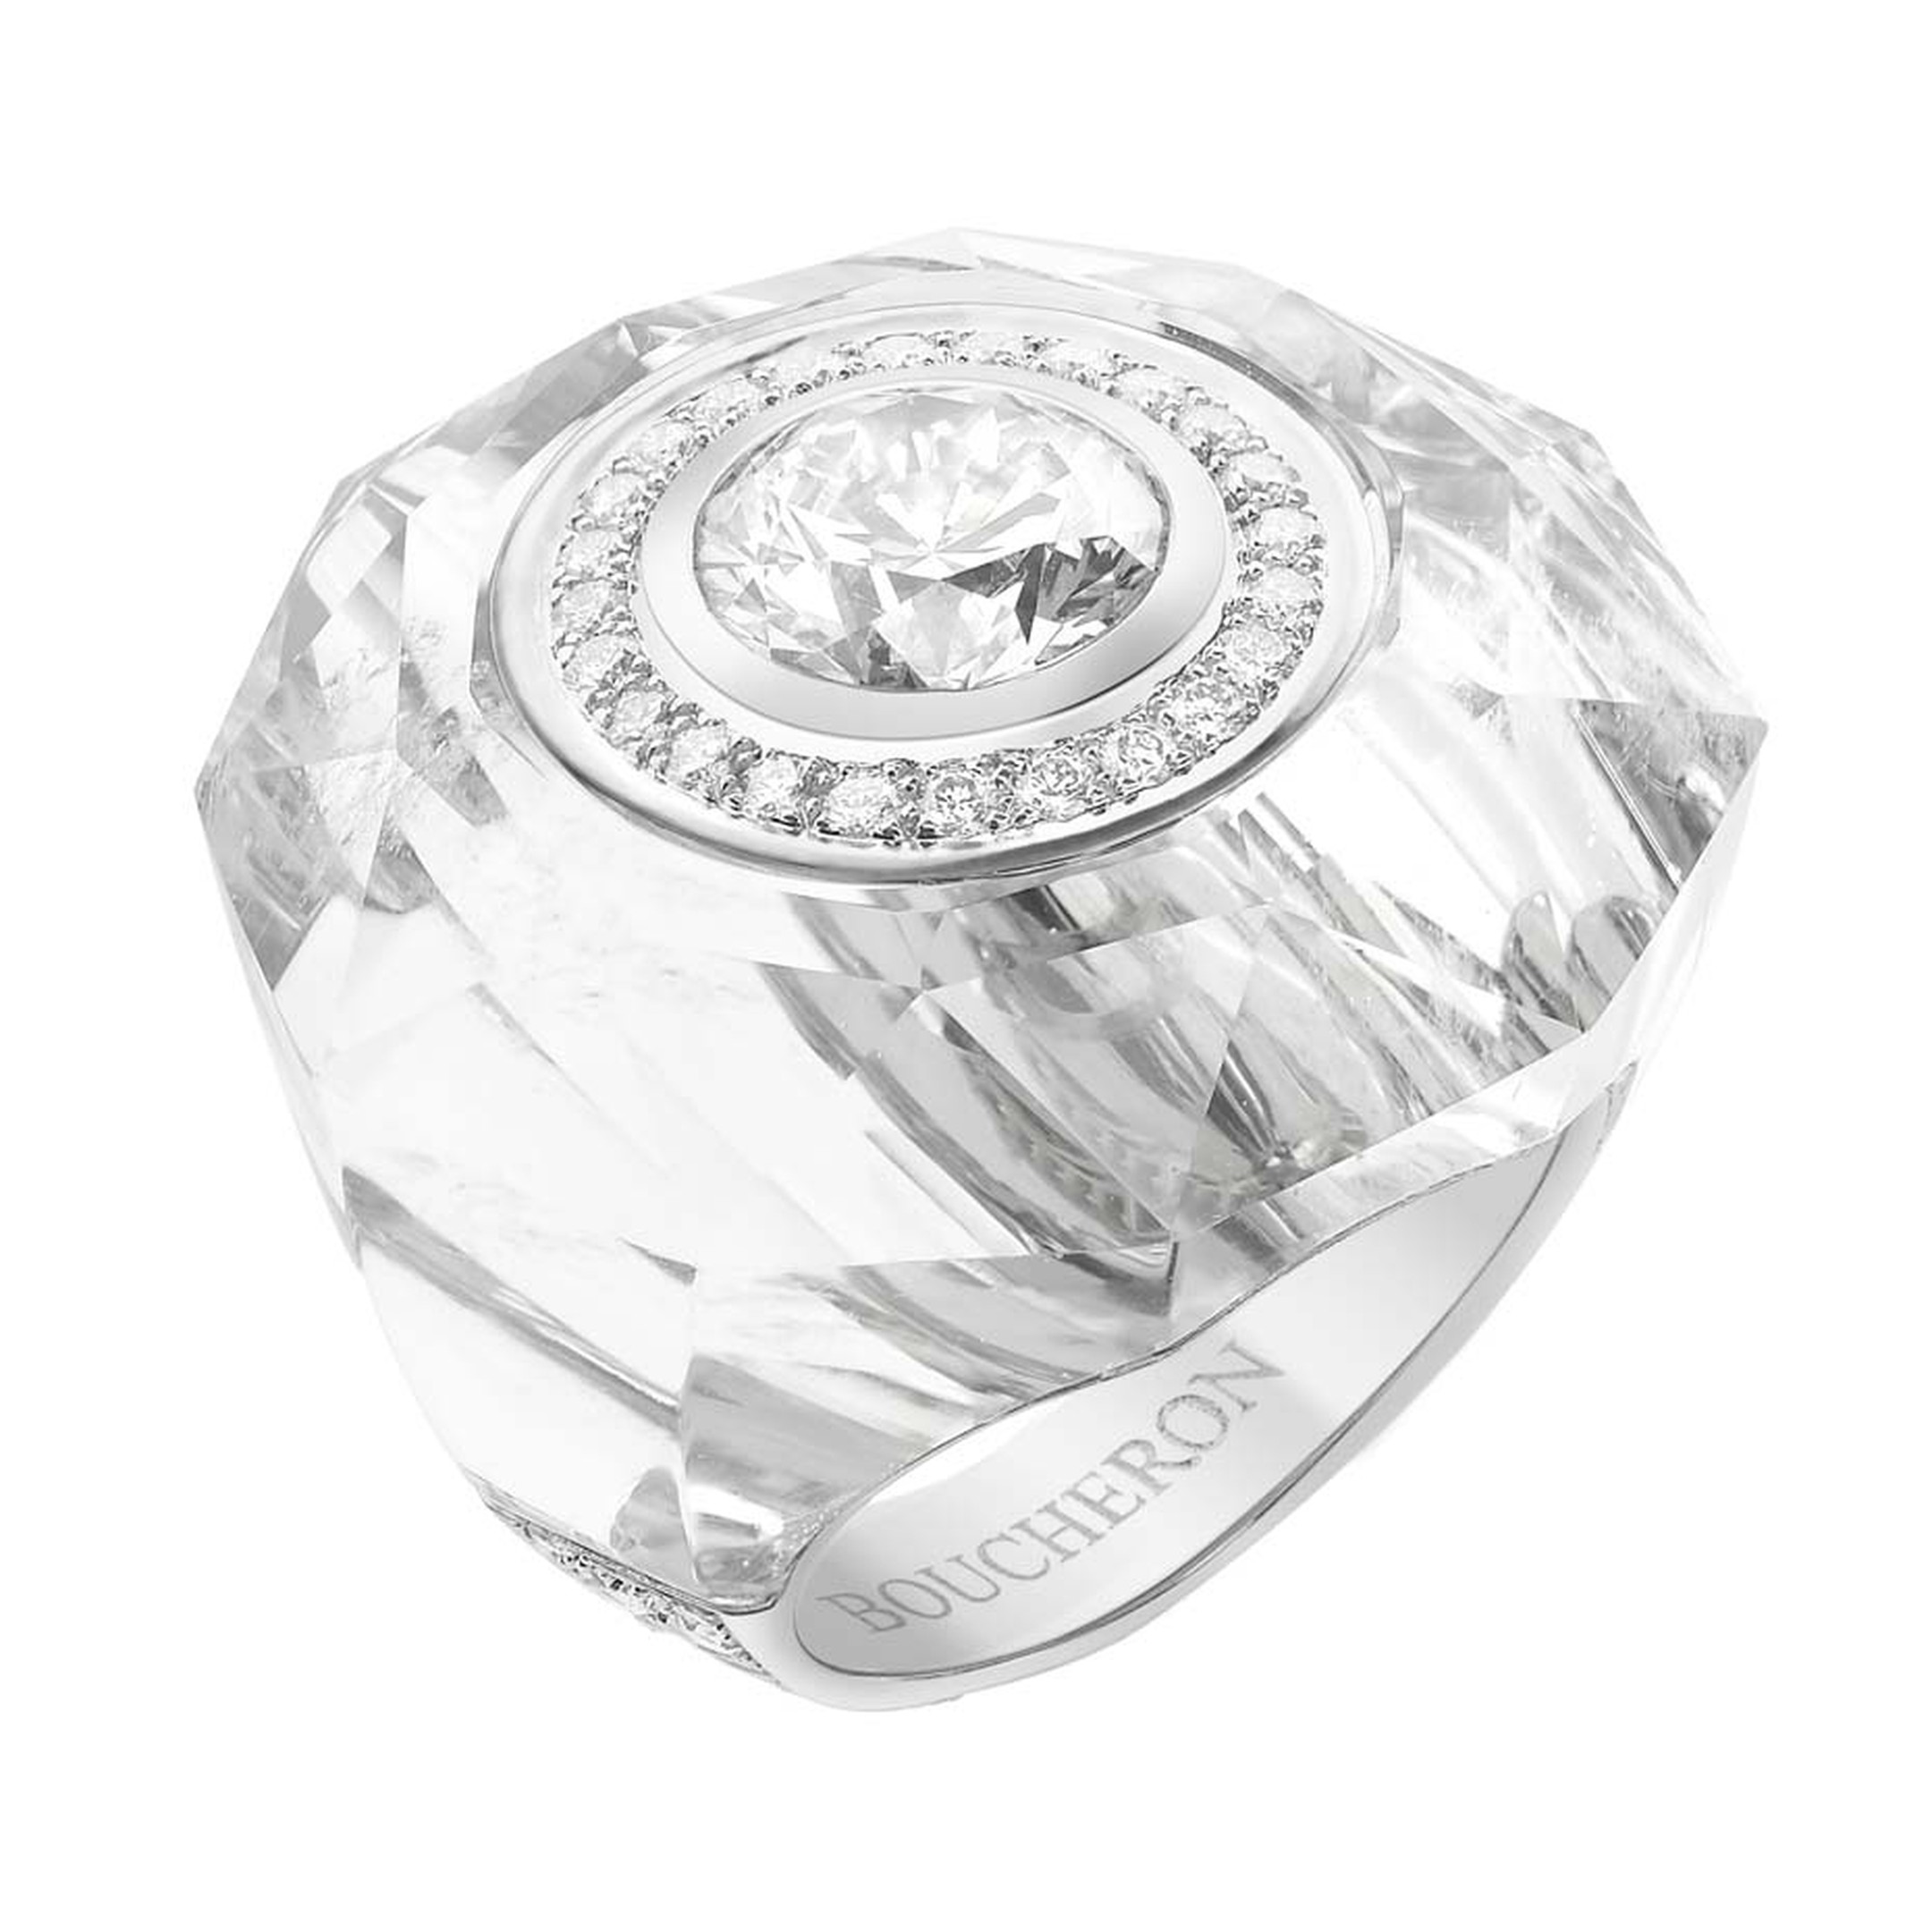 Another Boucheron Trésor de Perse ring features an inlaid diamond set into carved rock crystal, surrounded by diamonds.